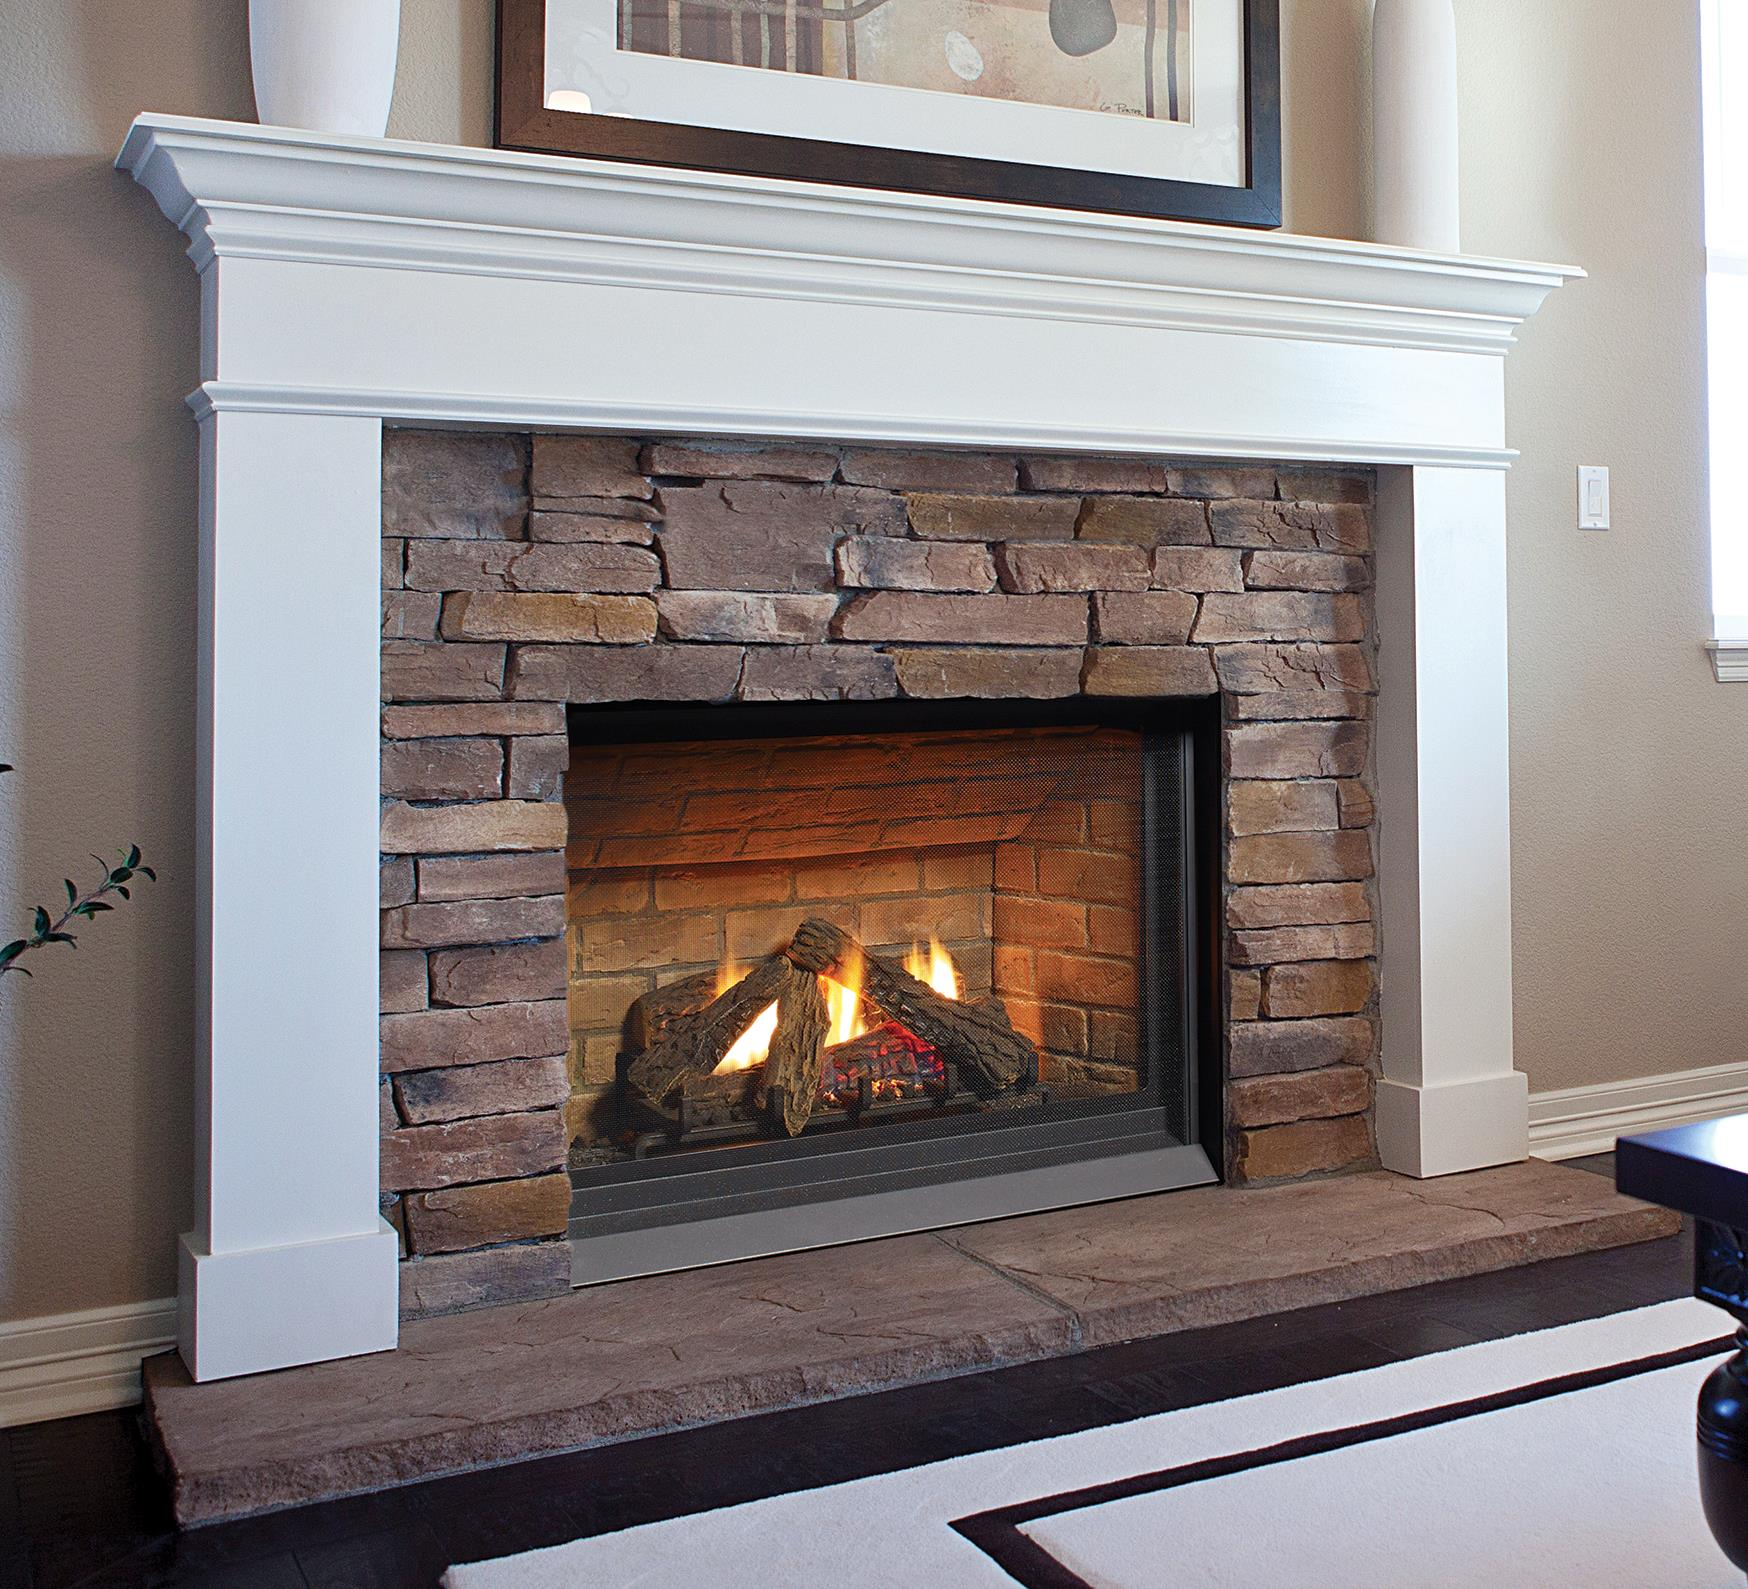 Fireplace Vent Direct Vented Gas Fireplace Specifications Architecture